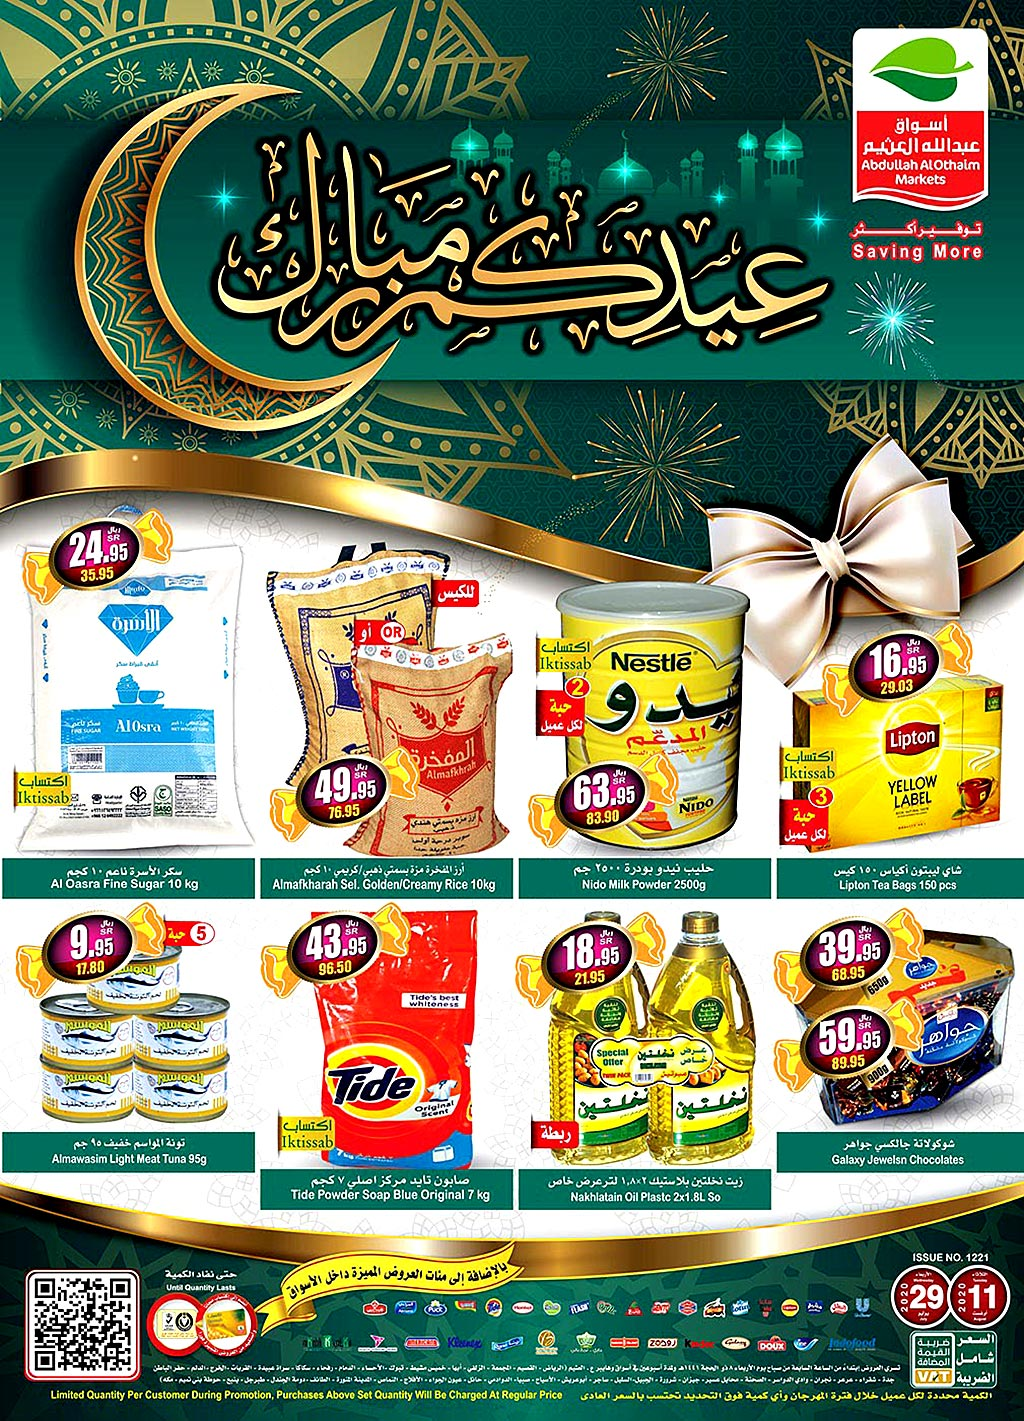 othaim offers from 29july to 11aug 2020 page number 1 عروض العثيم من 29 يوليو حتى 11 أغسطس 2020 صفحة رقم 1